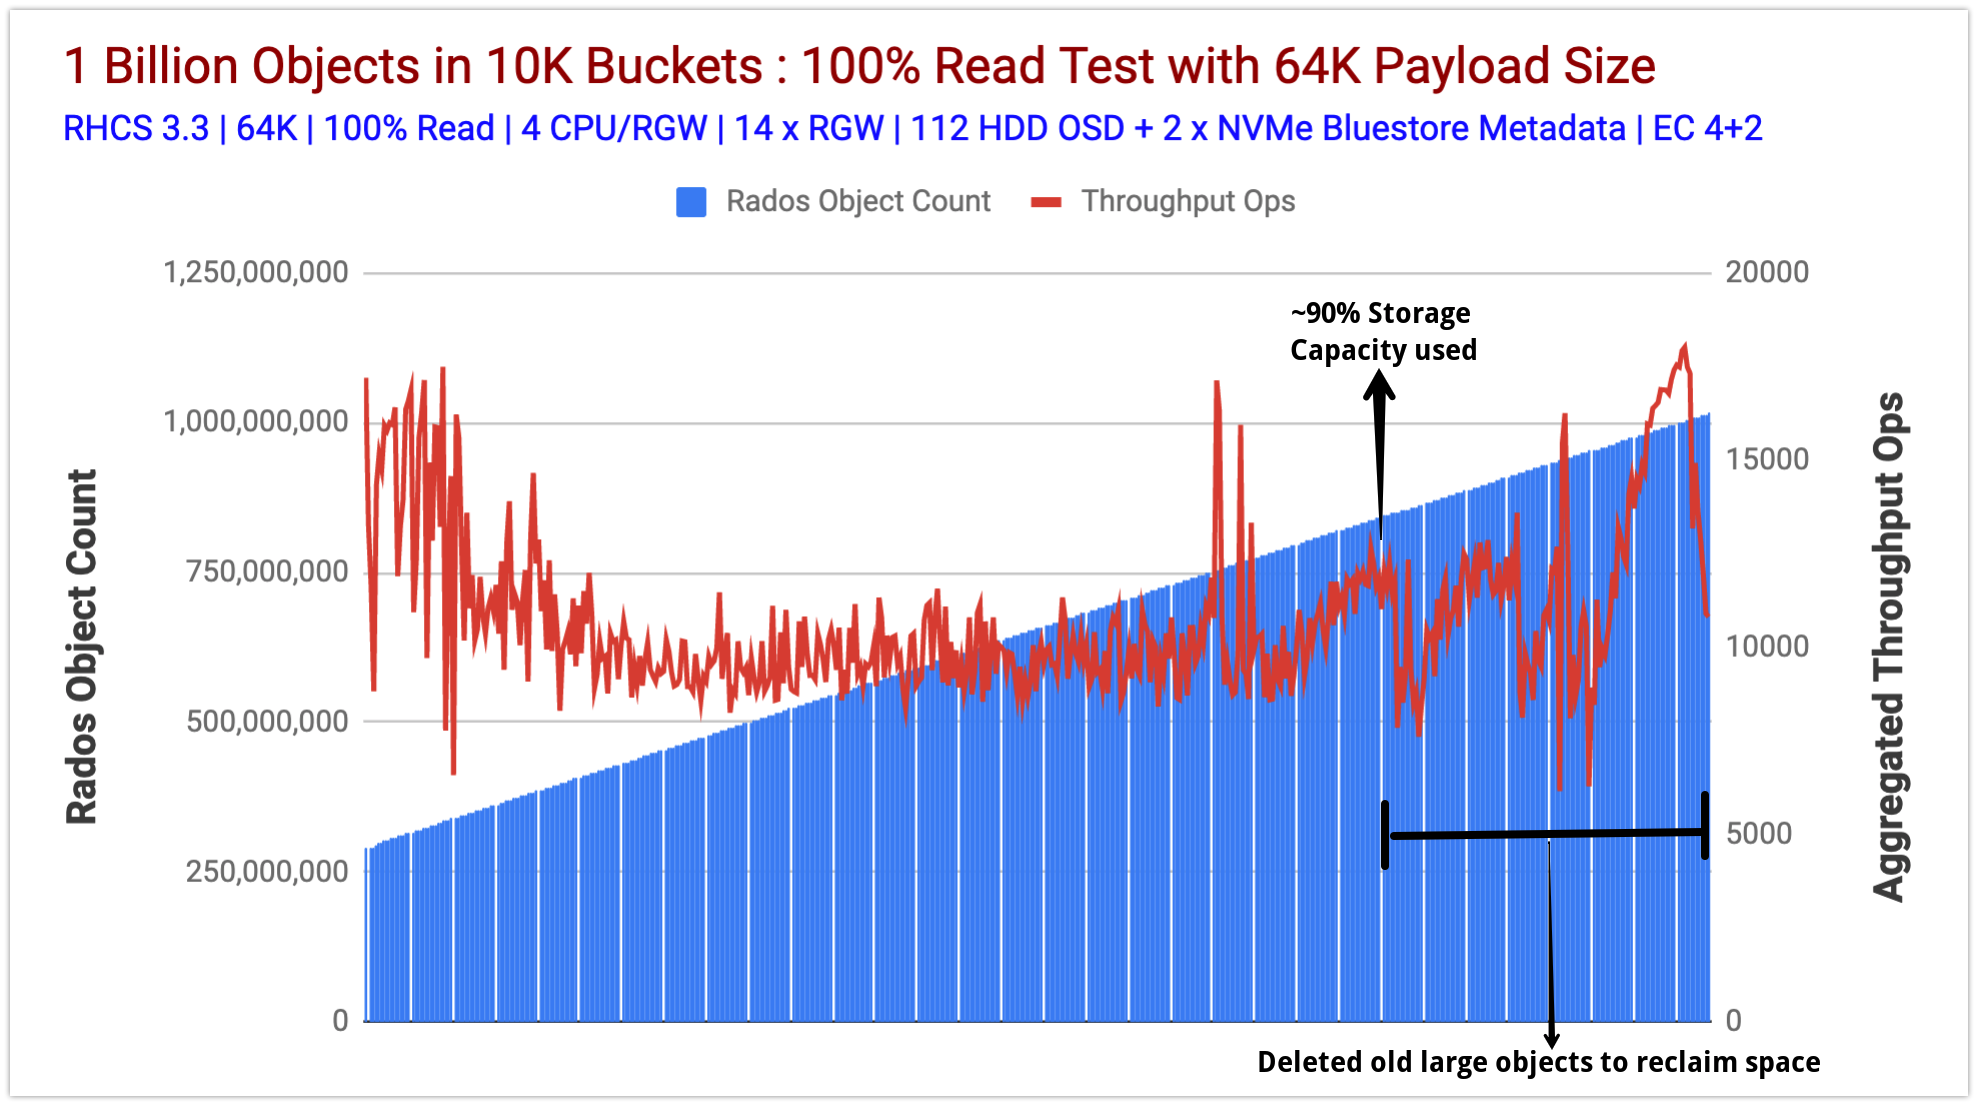 Chart 1: Object Count vs Aggregated Read Throughput Ops